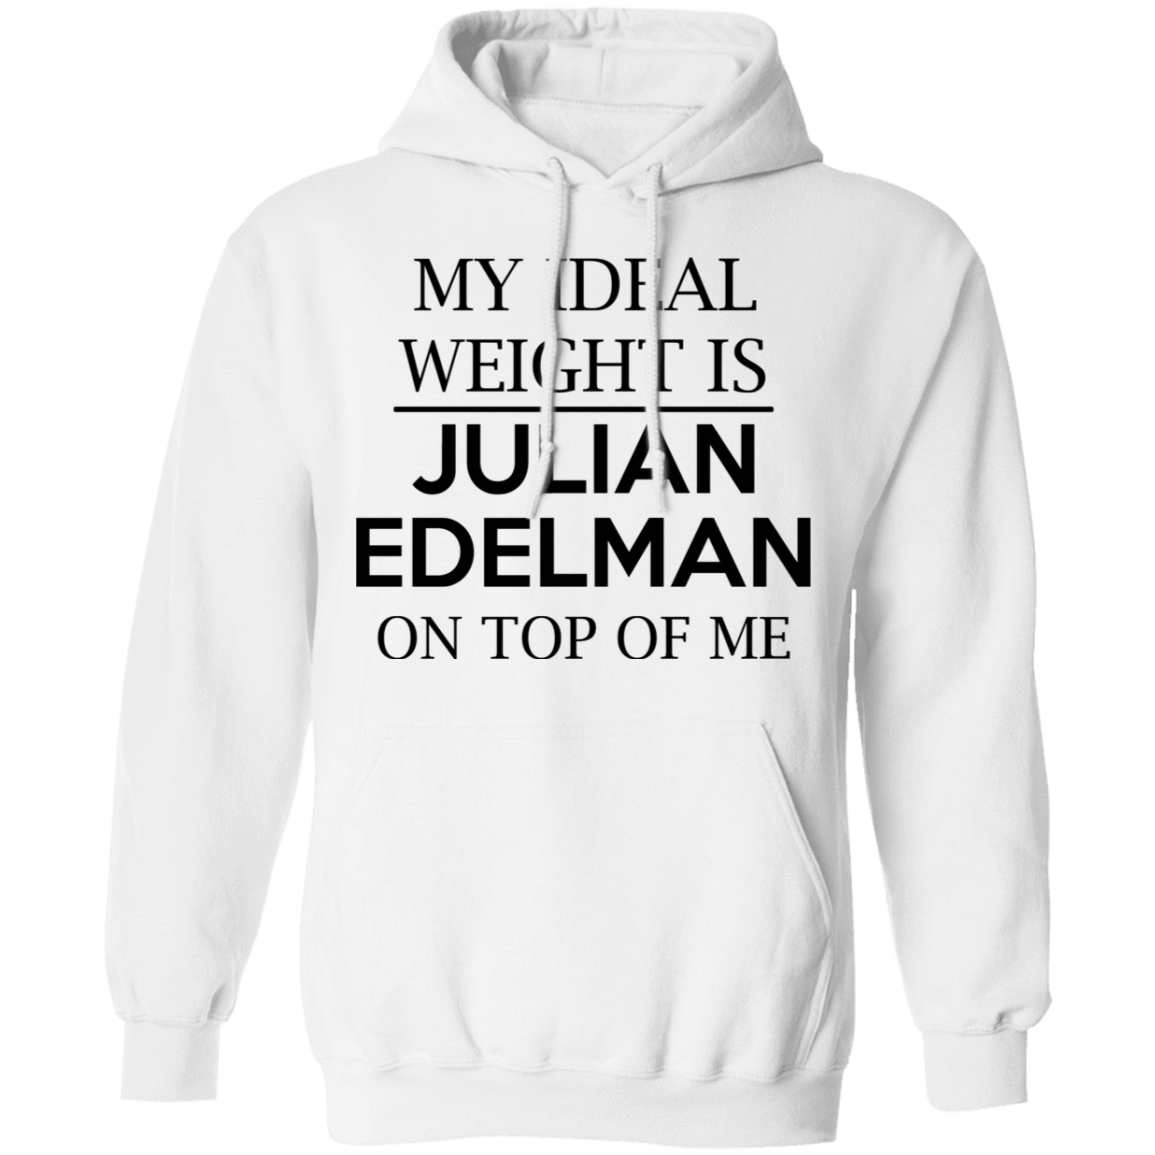 My Ideal Weight Is Julian Edelman On Top Of Me T-Shirts, Hoodies, Tank 541-4744-79345117-23183 - Tee Ript